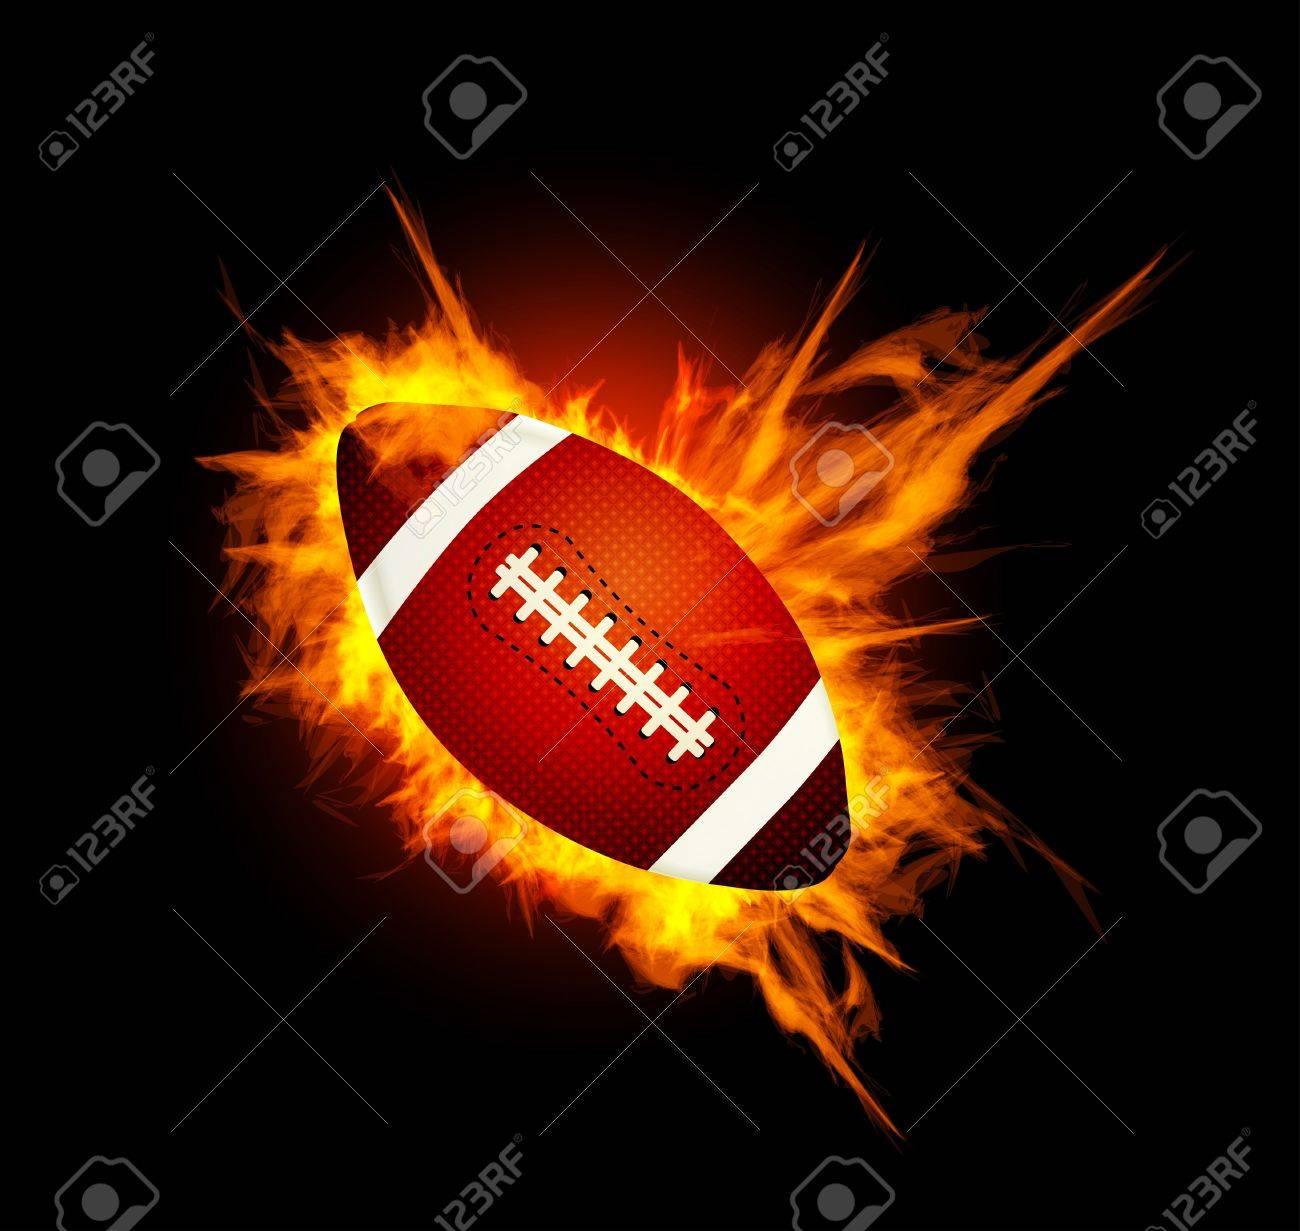 Realistic American football in the fire Stock Vector - 13126469